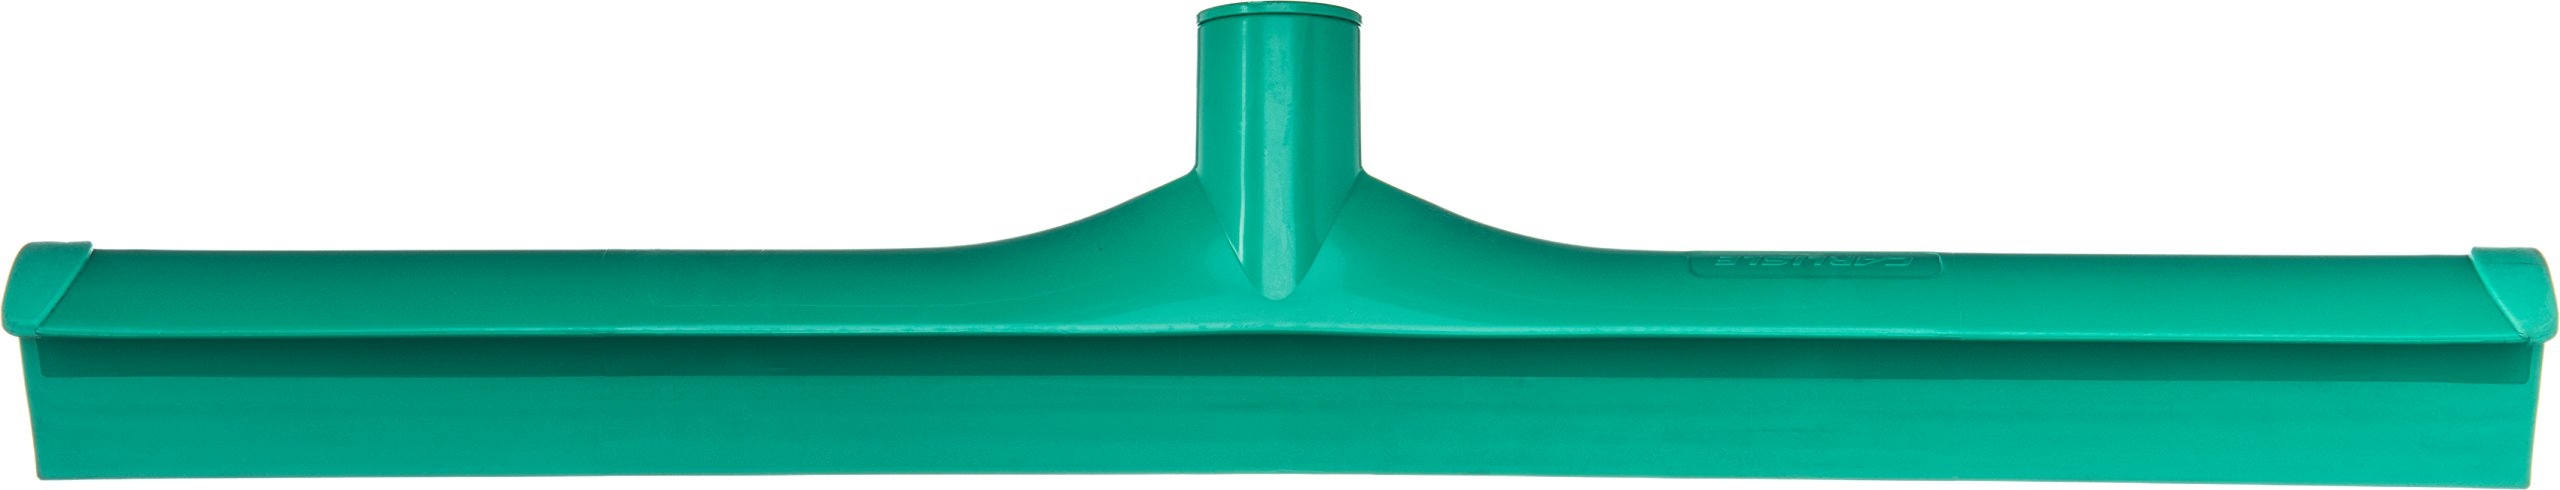 Carlisle 3656709 Solid One-Piece Foam Rubber Head Floor Squeegee, 20'' Length, Green (Case of 6)